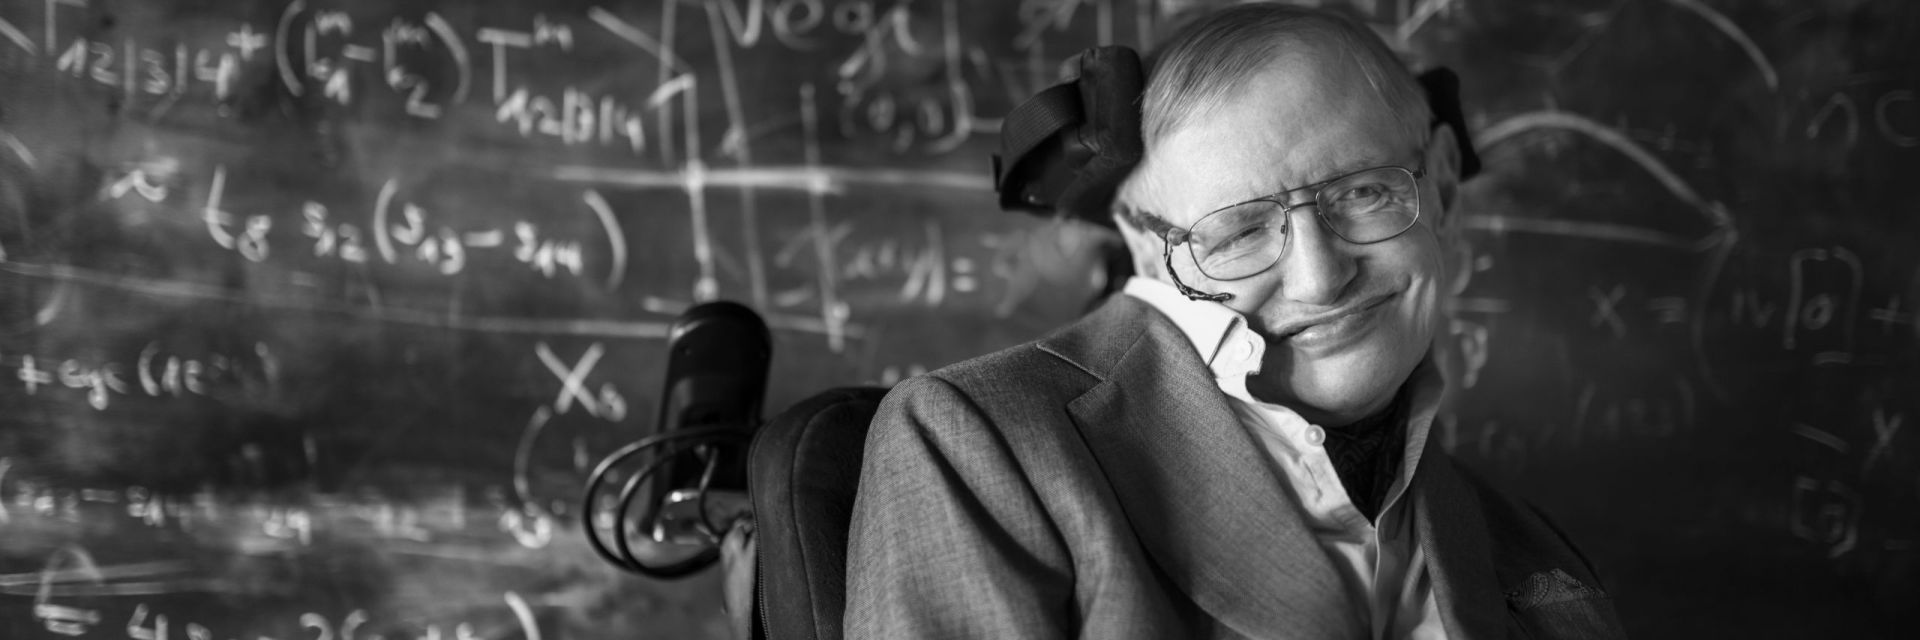 Lezing - Stephen Hawking, a scientific star?